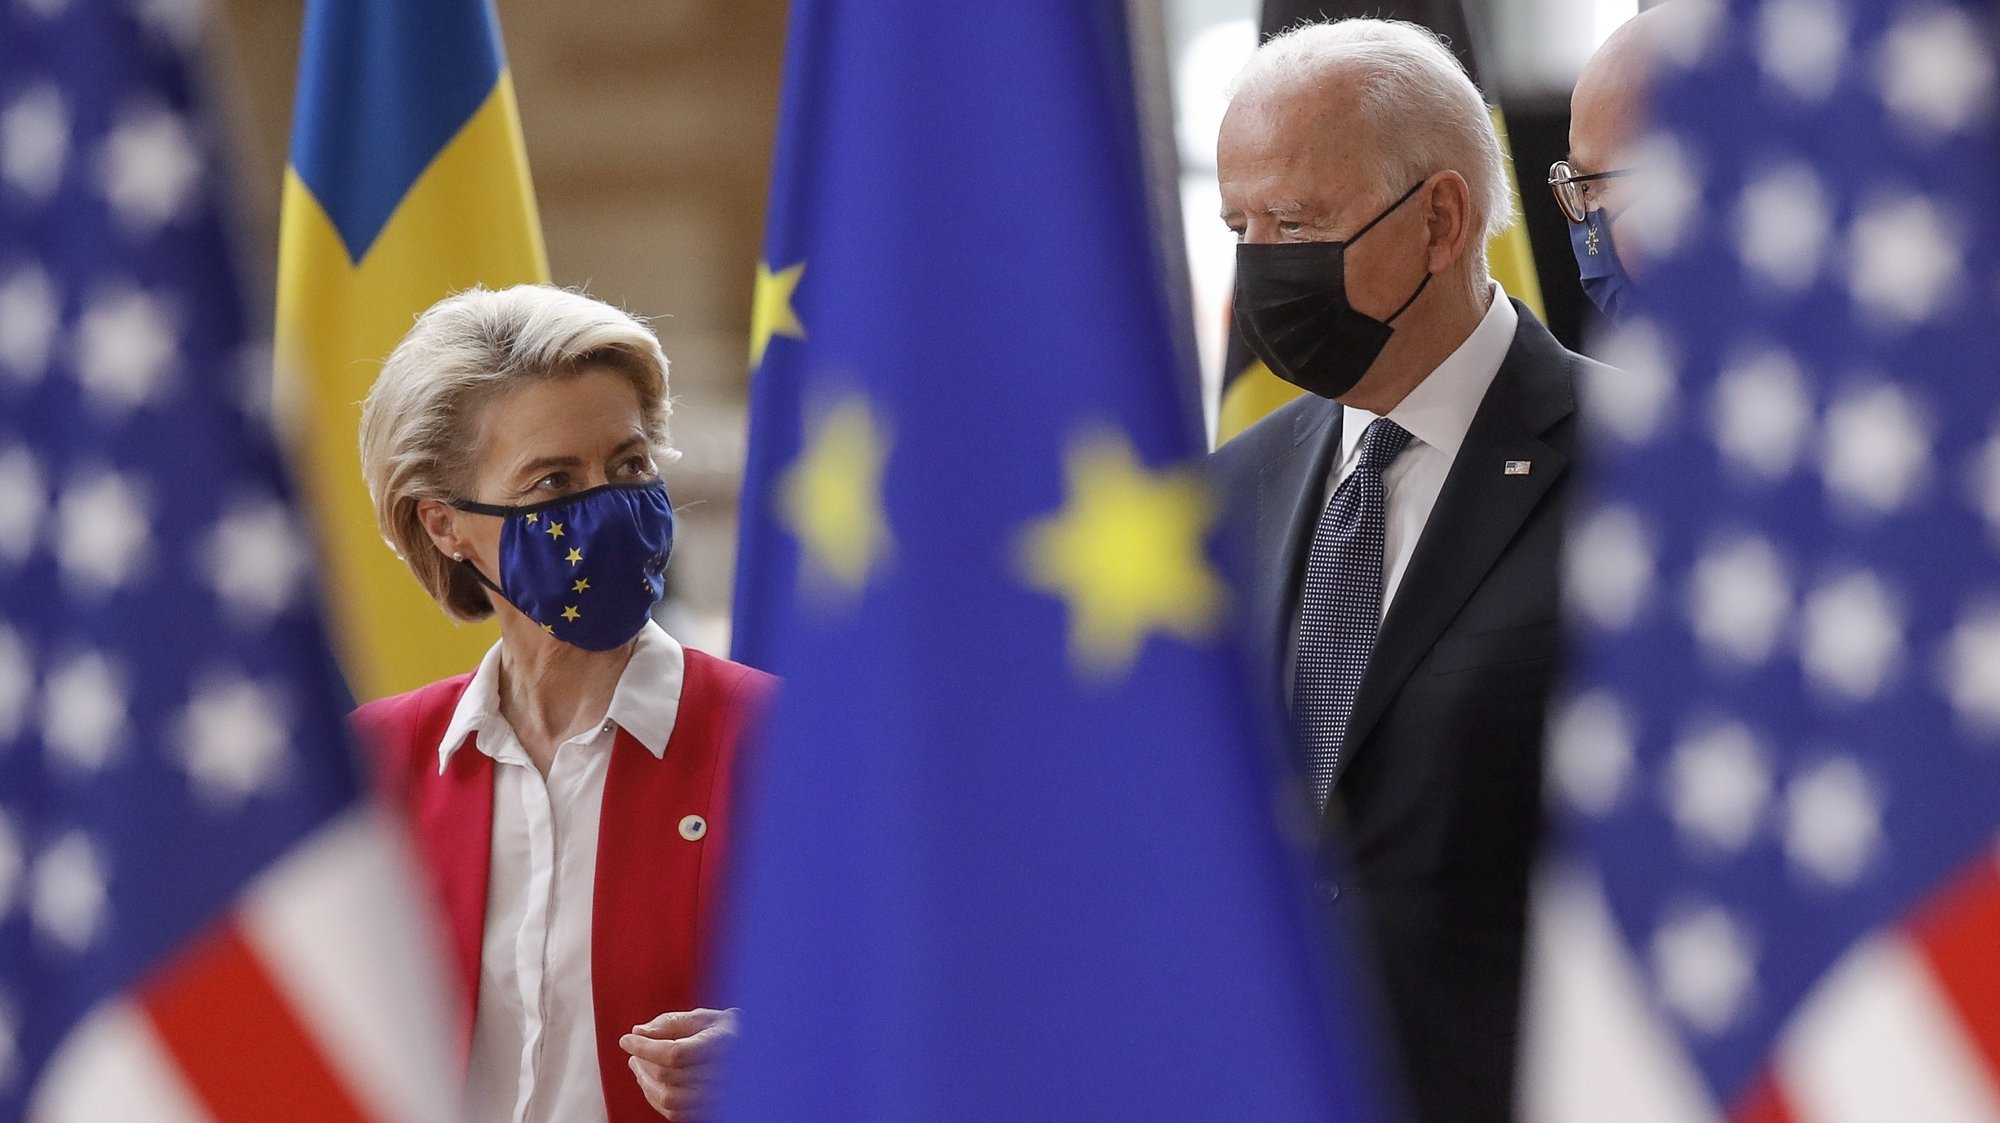 epaselect epa09272636 US president Joe Biden (R) is welcomed by President of the European Commission Ursula von der Leyen (L) ahead to the EU-US summit at the European Council in Brussels, Belgium, 15 June 2021.  EPA/OLIVIER HOSLET